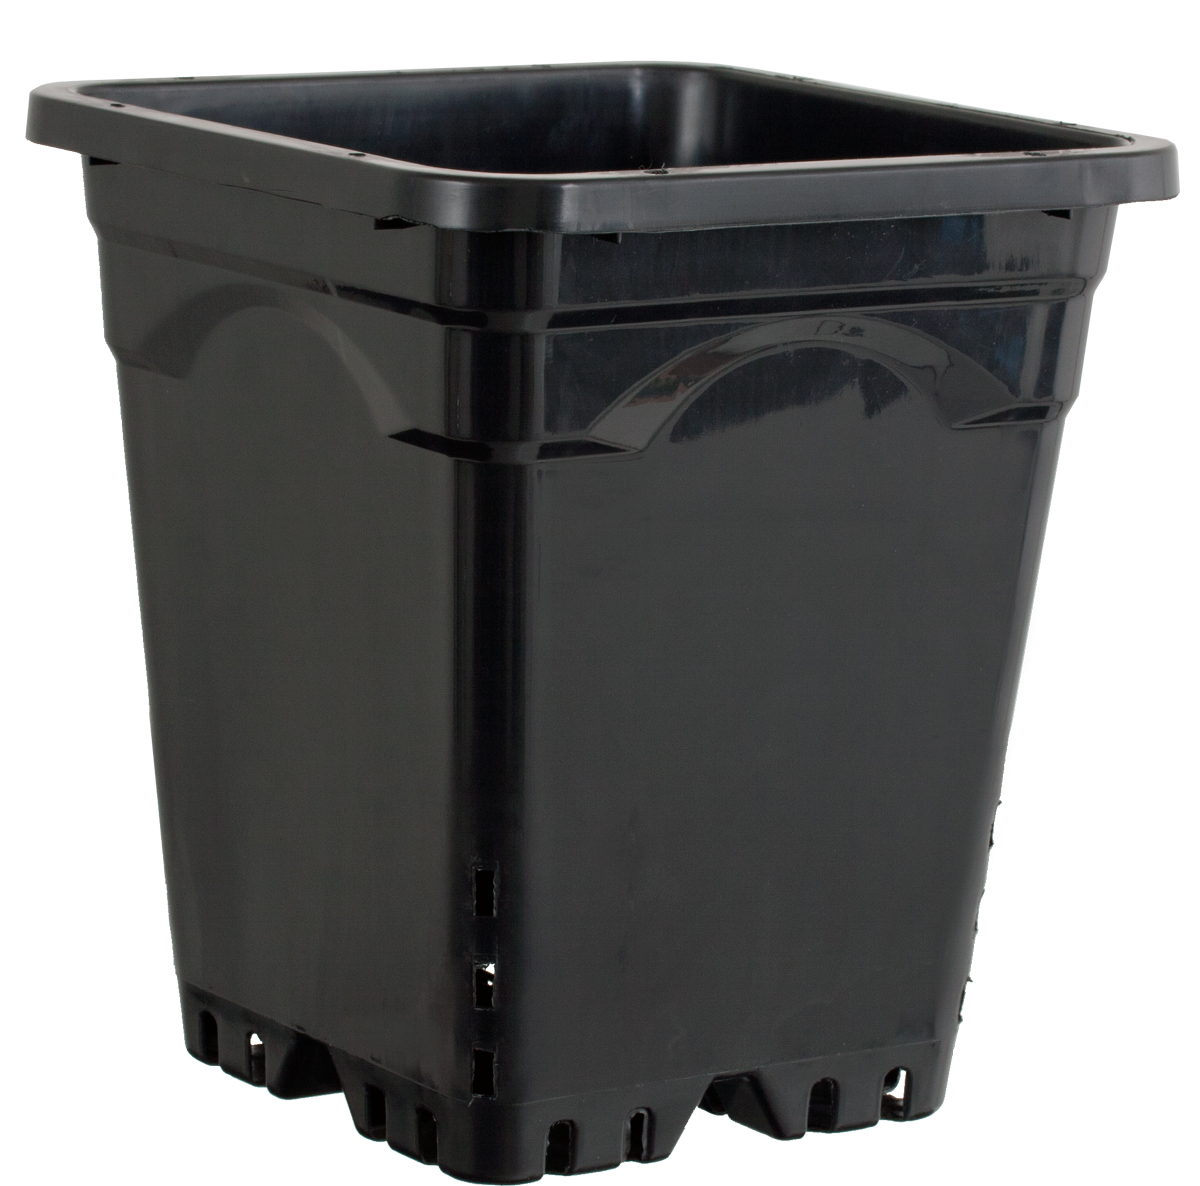 Active Aqua 9 x 9 Square Black Pot - 10 Tall - 24 PER CASE